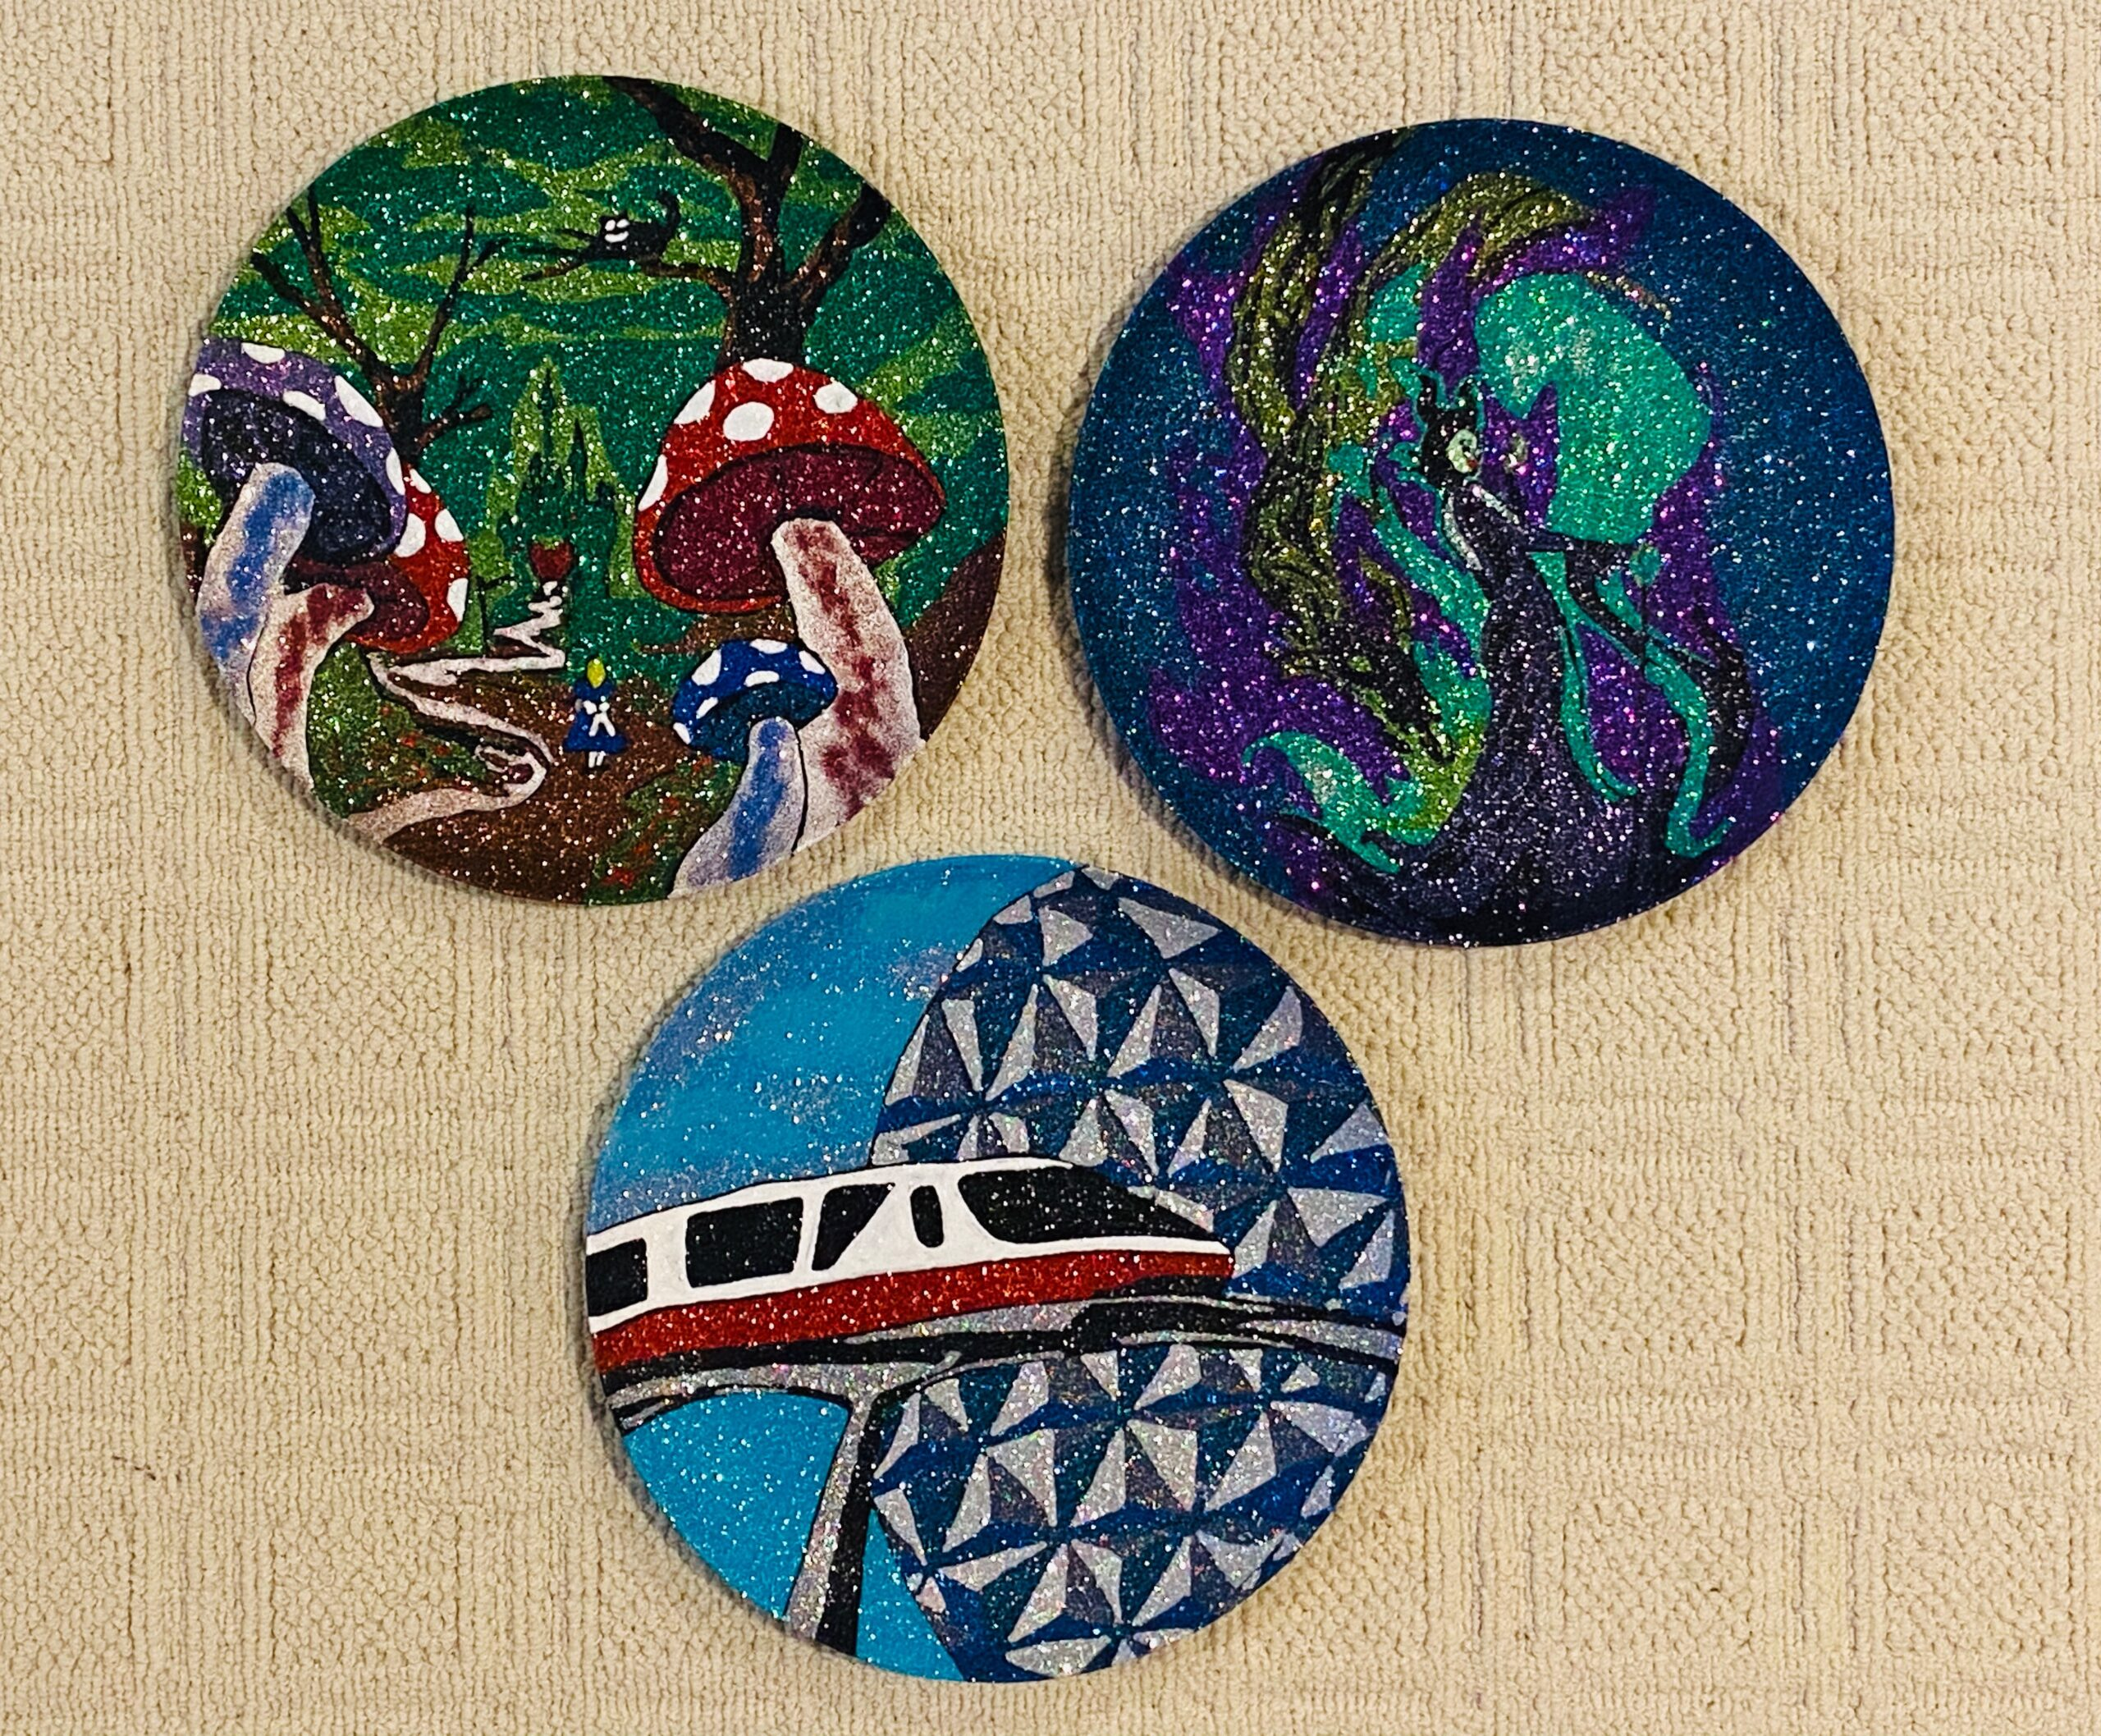 decorated plates - mushroom forrest scene, Disney monorail in front of Epcot